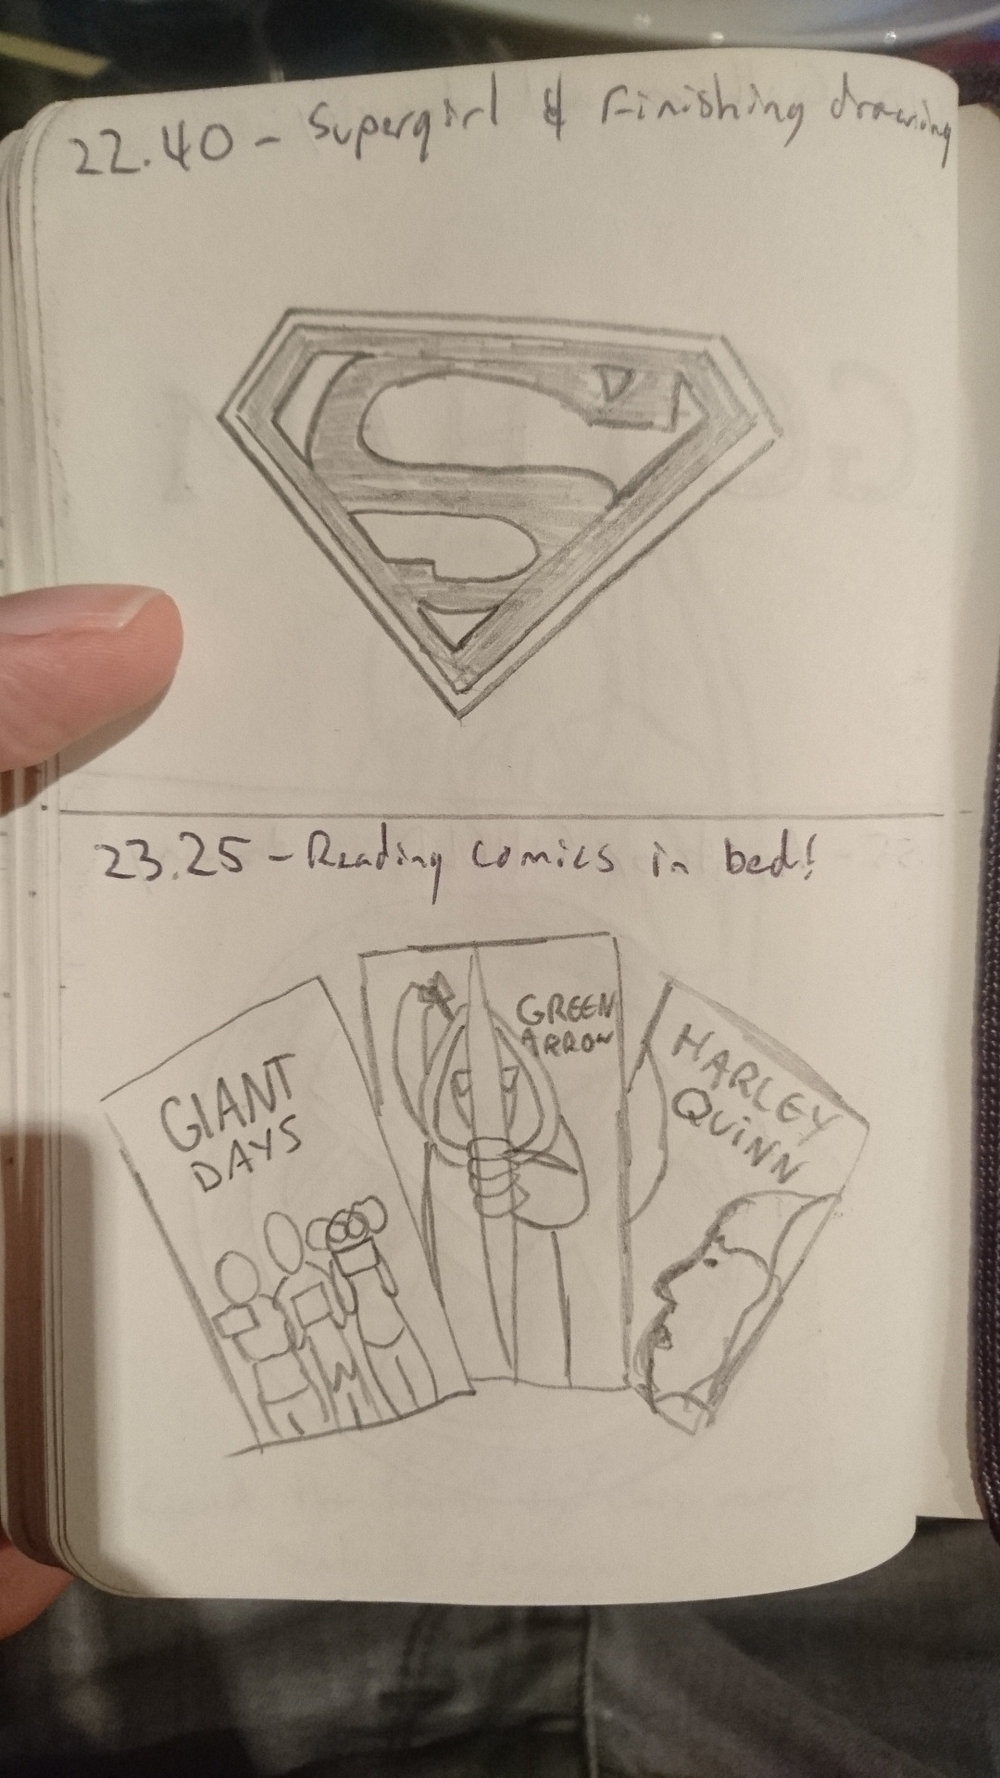 22:40:  Supergirl and finishing drawing.  23:25: Reading comics in bed!